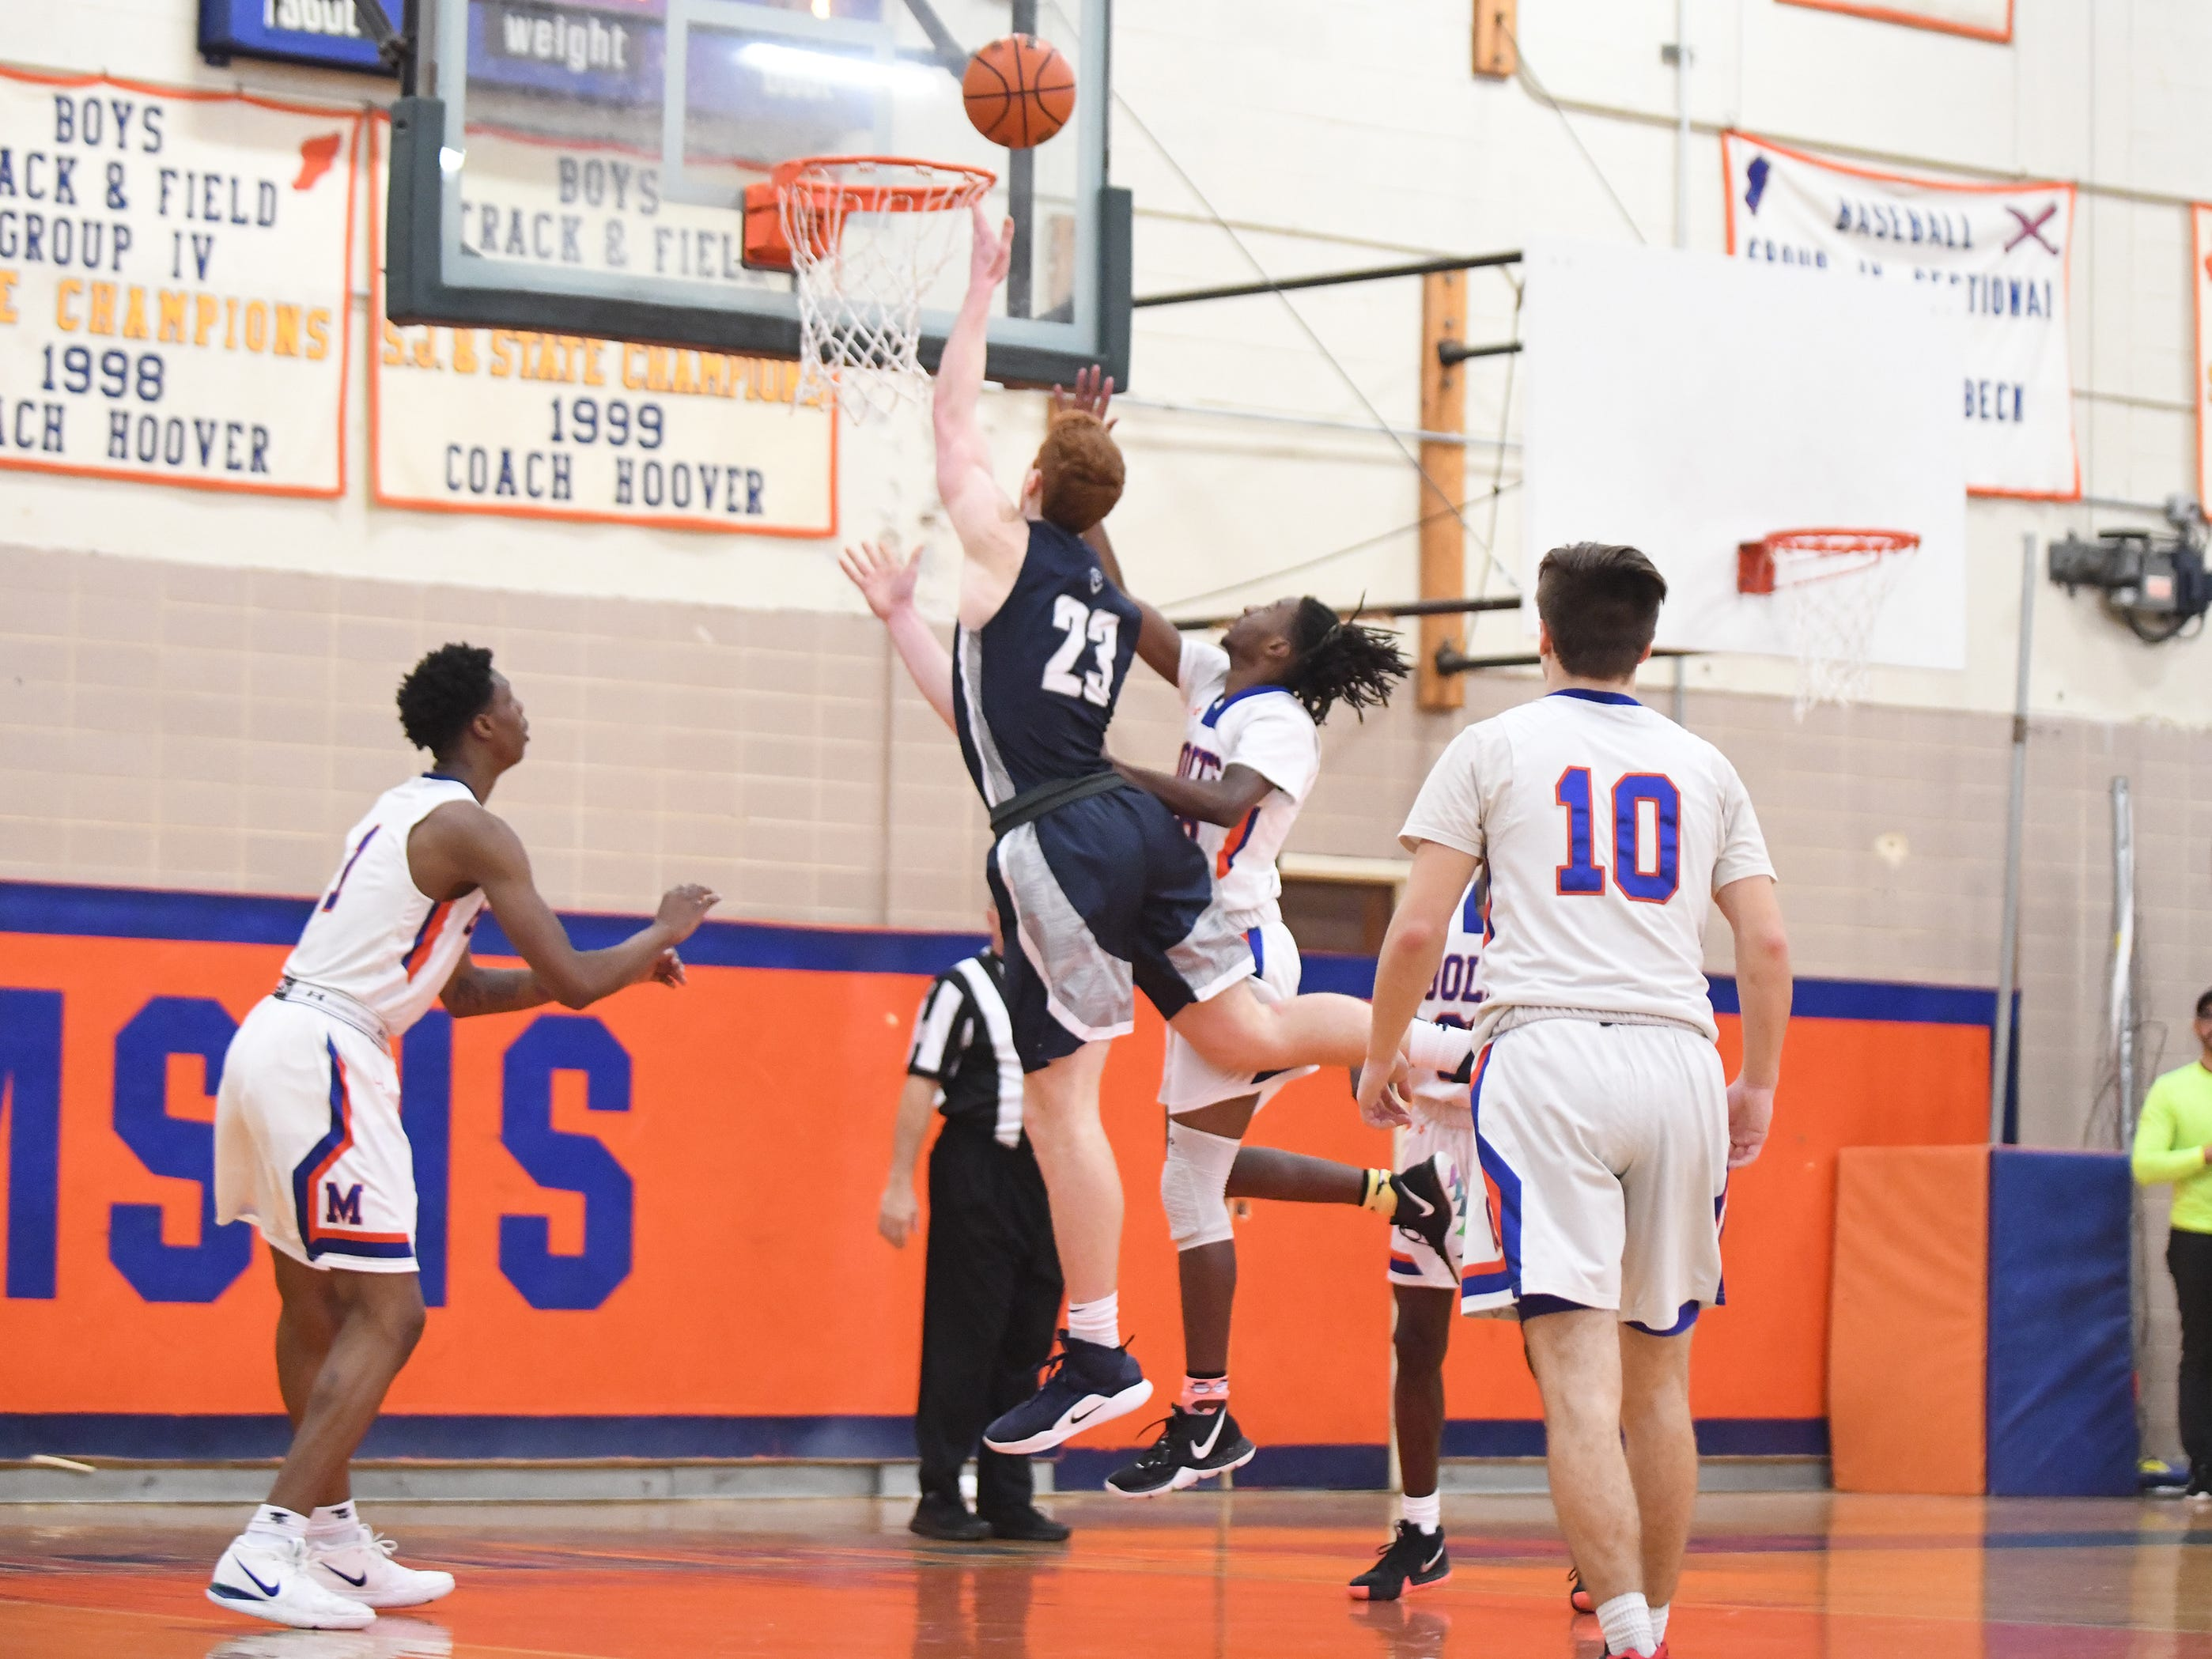 St. Augustine's Andrew Delaney scores during a game against Millville. The Hermits topped the Thunderbolts 66-53 on Friday, Jan. 18, 2019.